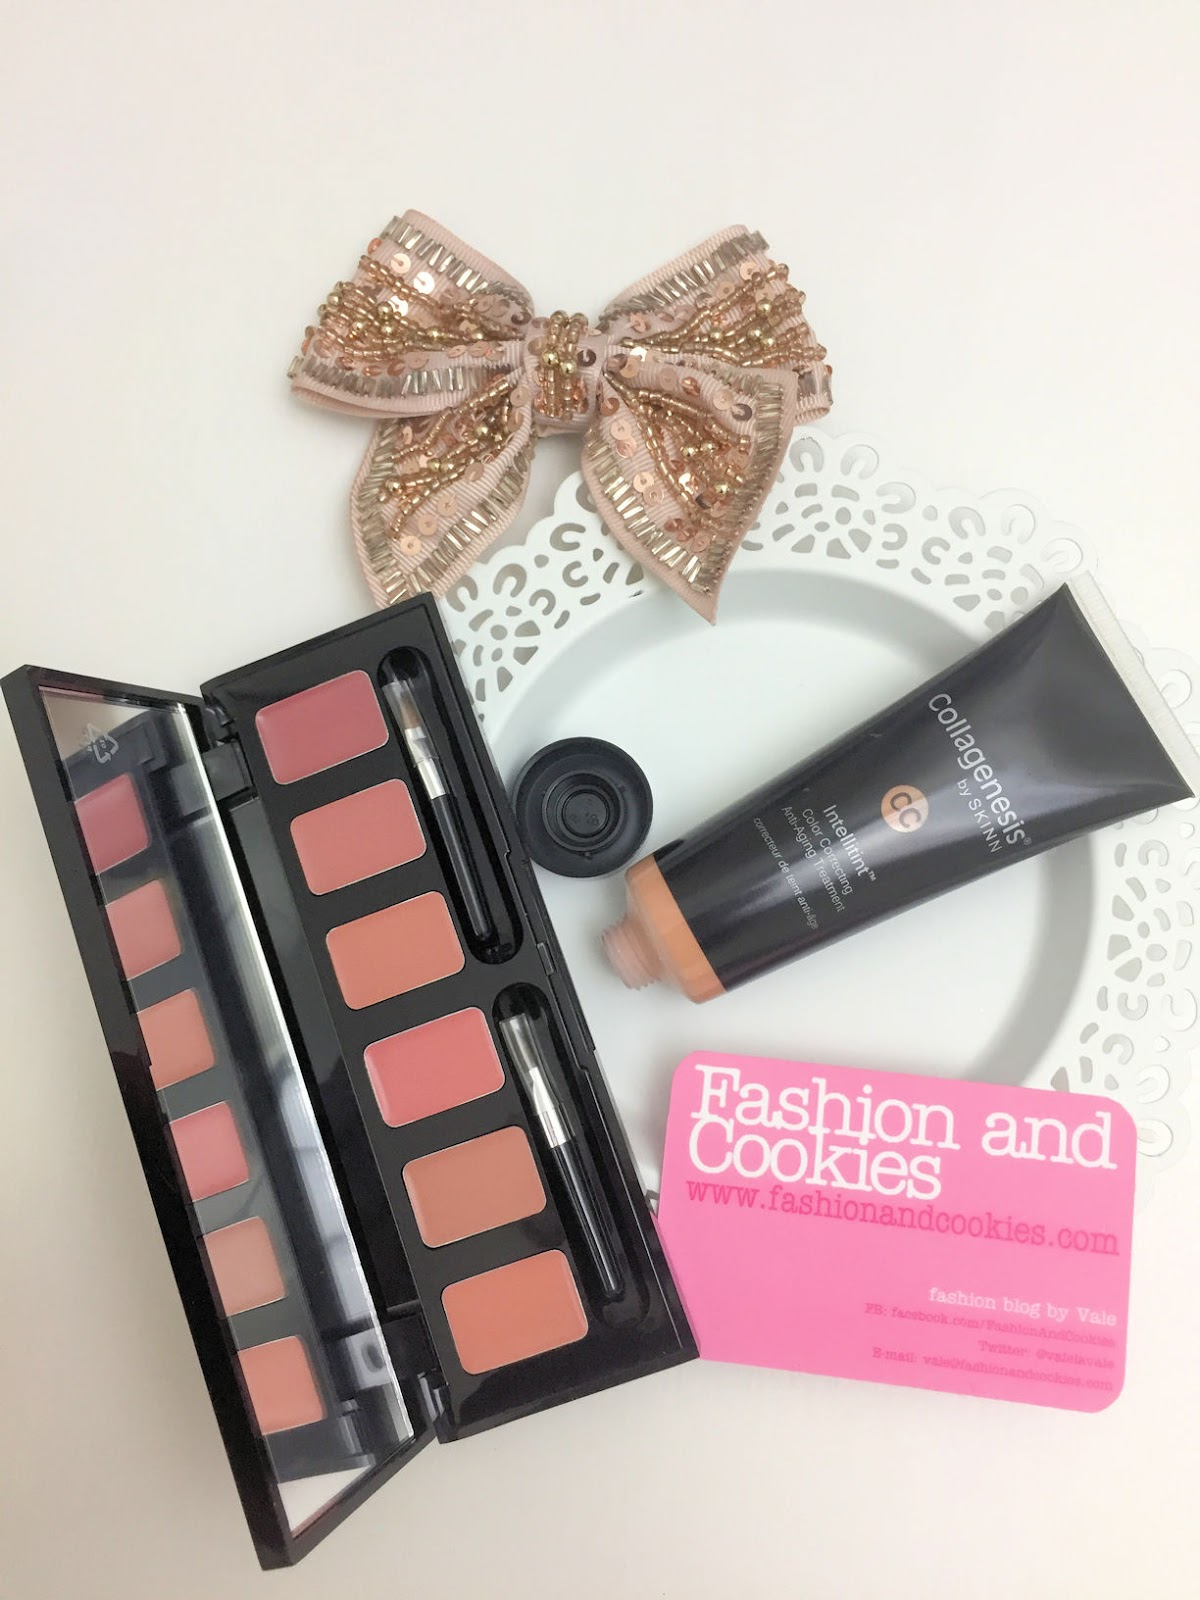 SKINN Cosmetics makeup, Hollywood nude palette on HSE24 on Fashion and Cookies beauty blog, beauty blogger